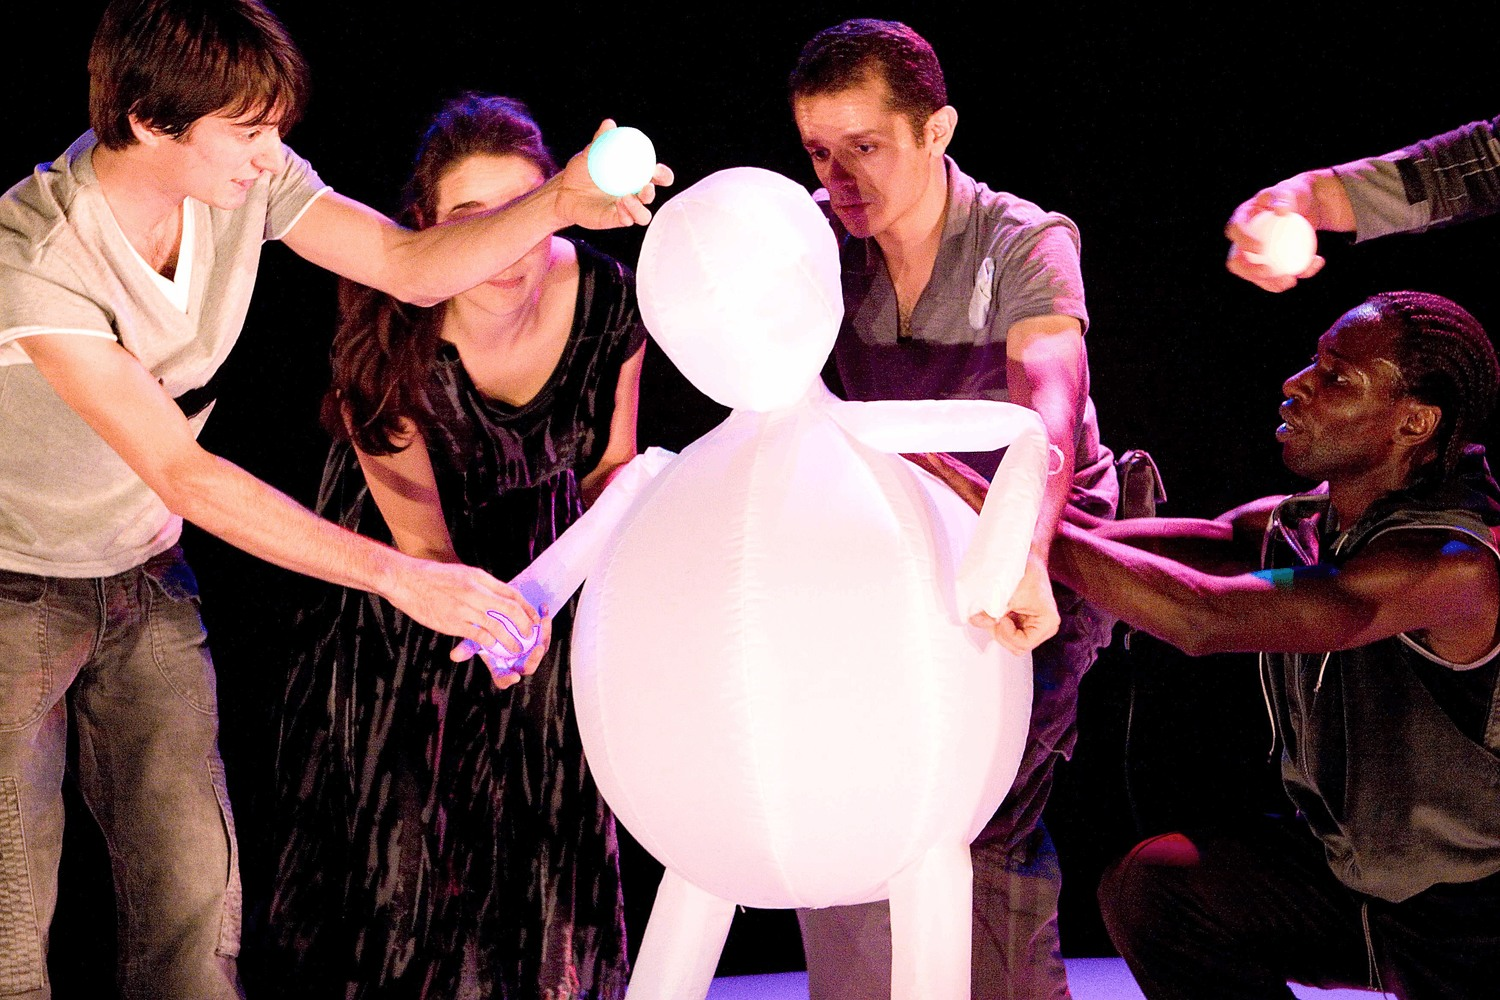 Four performers manipulate the movements of a boy made out of white balloons, trying to encourage him to play a ball game